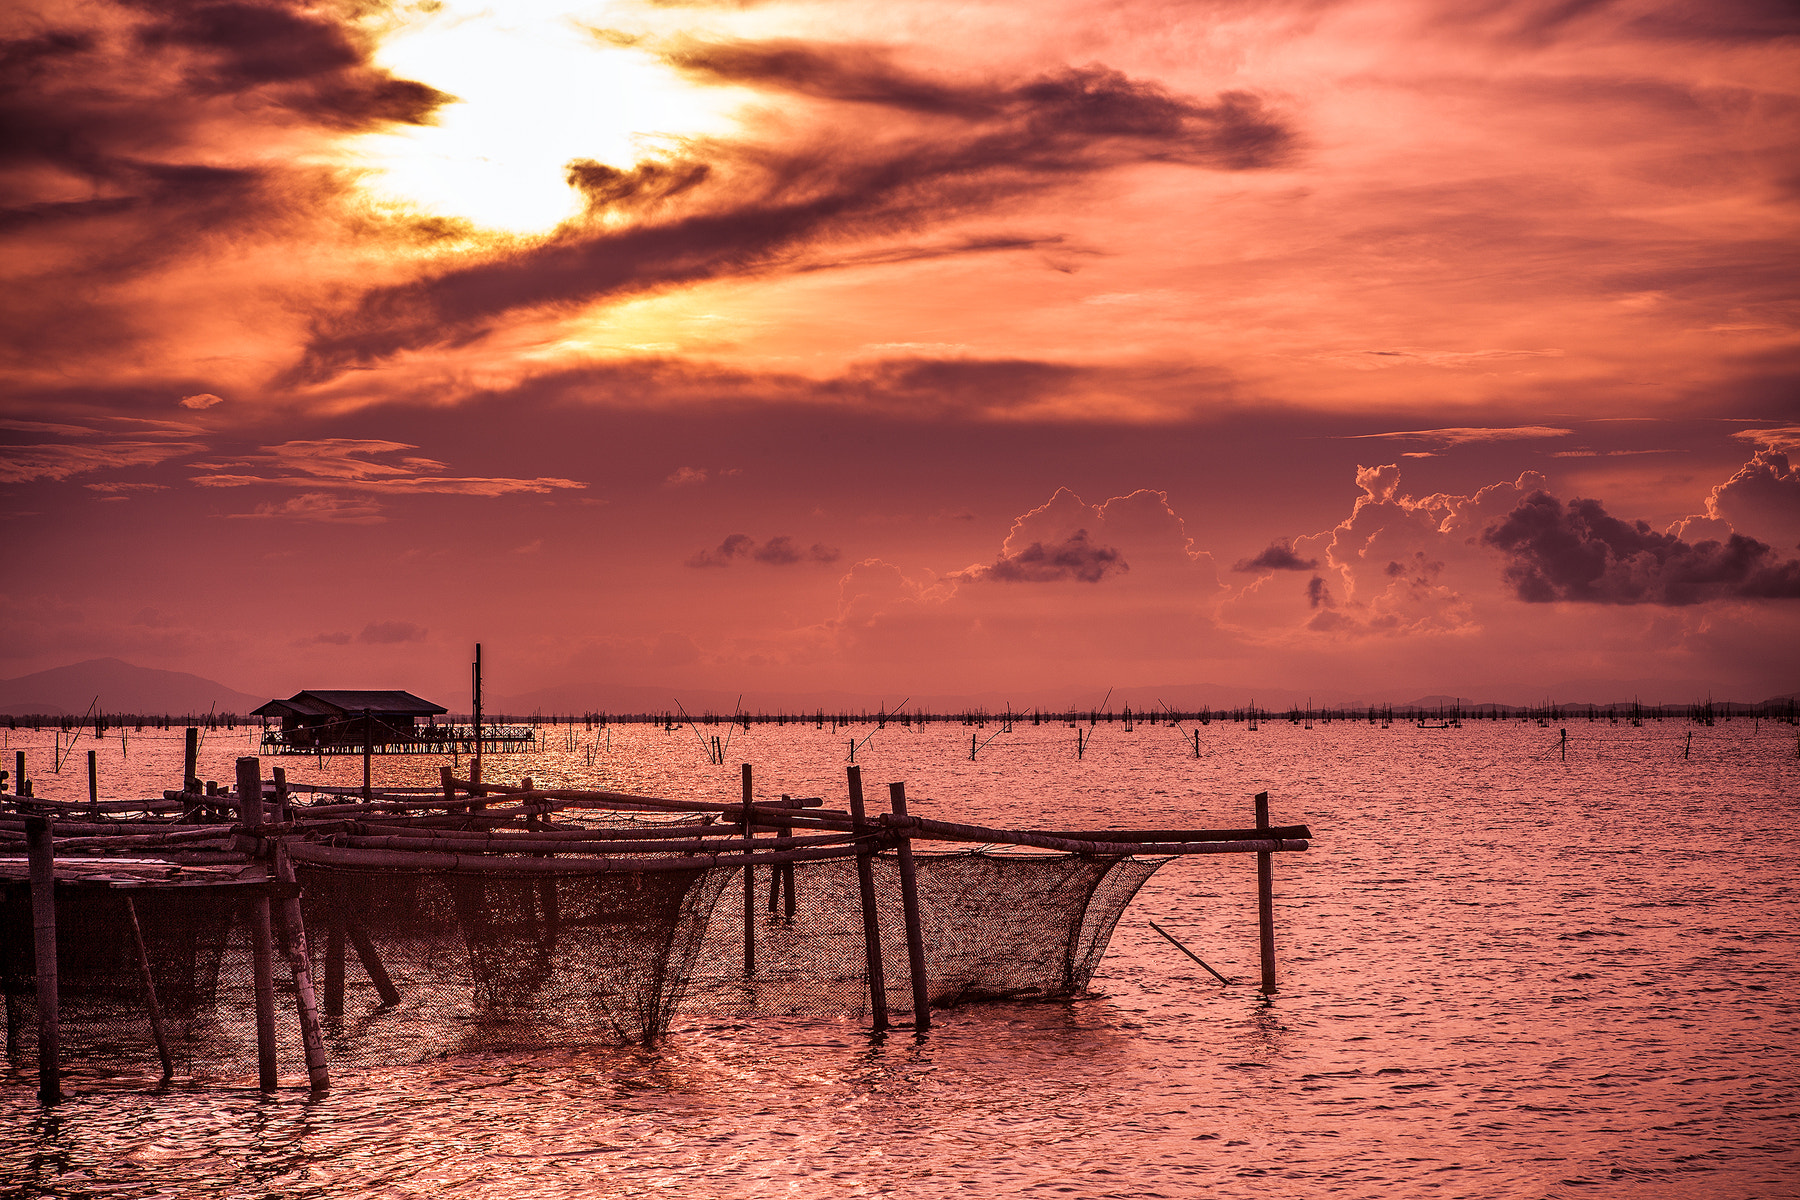 Photograph Koh Yor - Songkhla by Paphawit Ngamchaliew on 500px